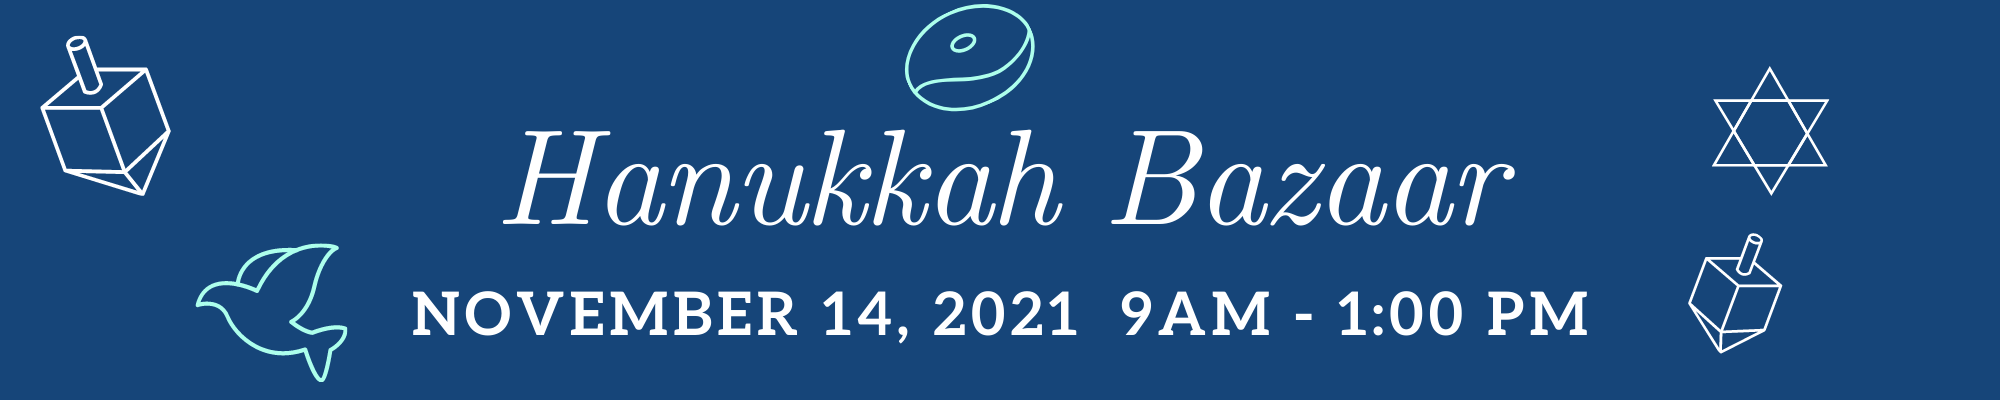 """<span class=""""slider_title"""">                                     Judaica Shop hosts a Chanukah Bazaar                                </span>                                                                                                                                                                                       <span class=""""slider_description"""">November 14 from 9 AM - 1 PM. At the Bazaar the Judaica Shop will be selling many different types of Chanukah products and gift items, along with other vendors. Coffee and muffins will be set up outside under the portico.</span>"""